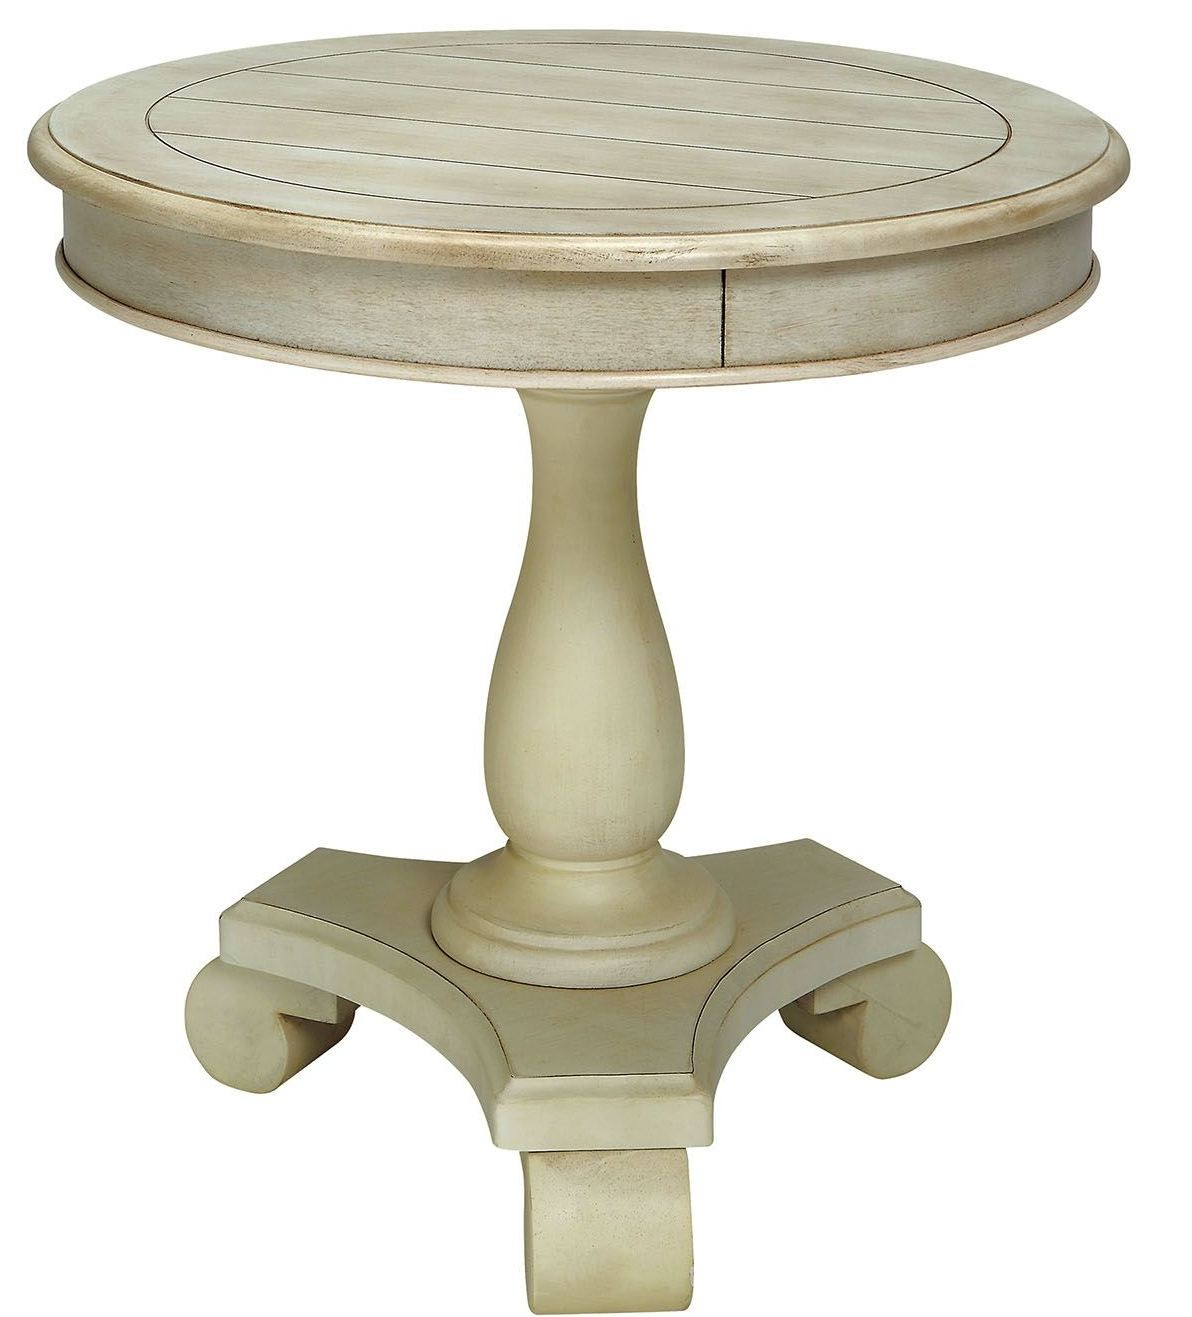 white round accent table small kalea antique from furniture neelan counter height pub black acrylic side designer tablecloths outside tables large garden umbrellas full length